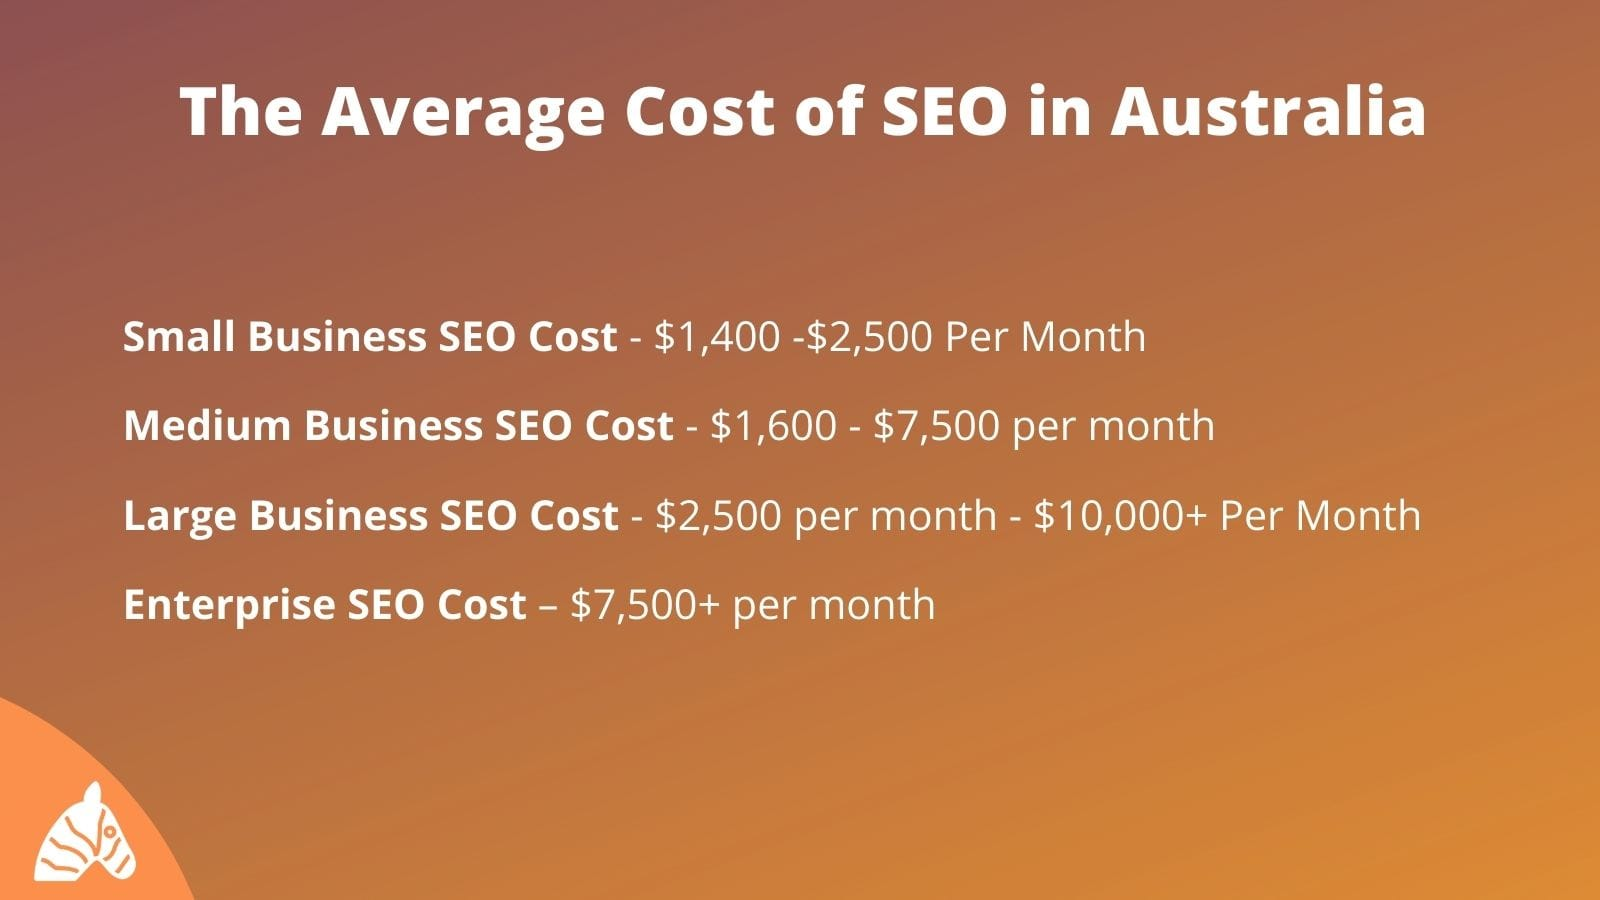 The average cost of SEO in Australia by business type